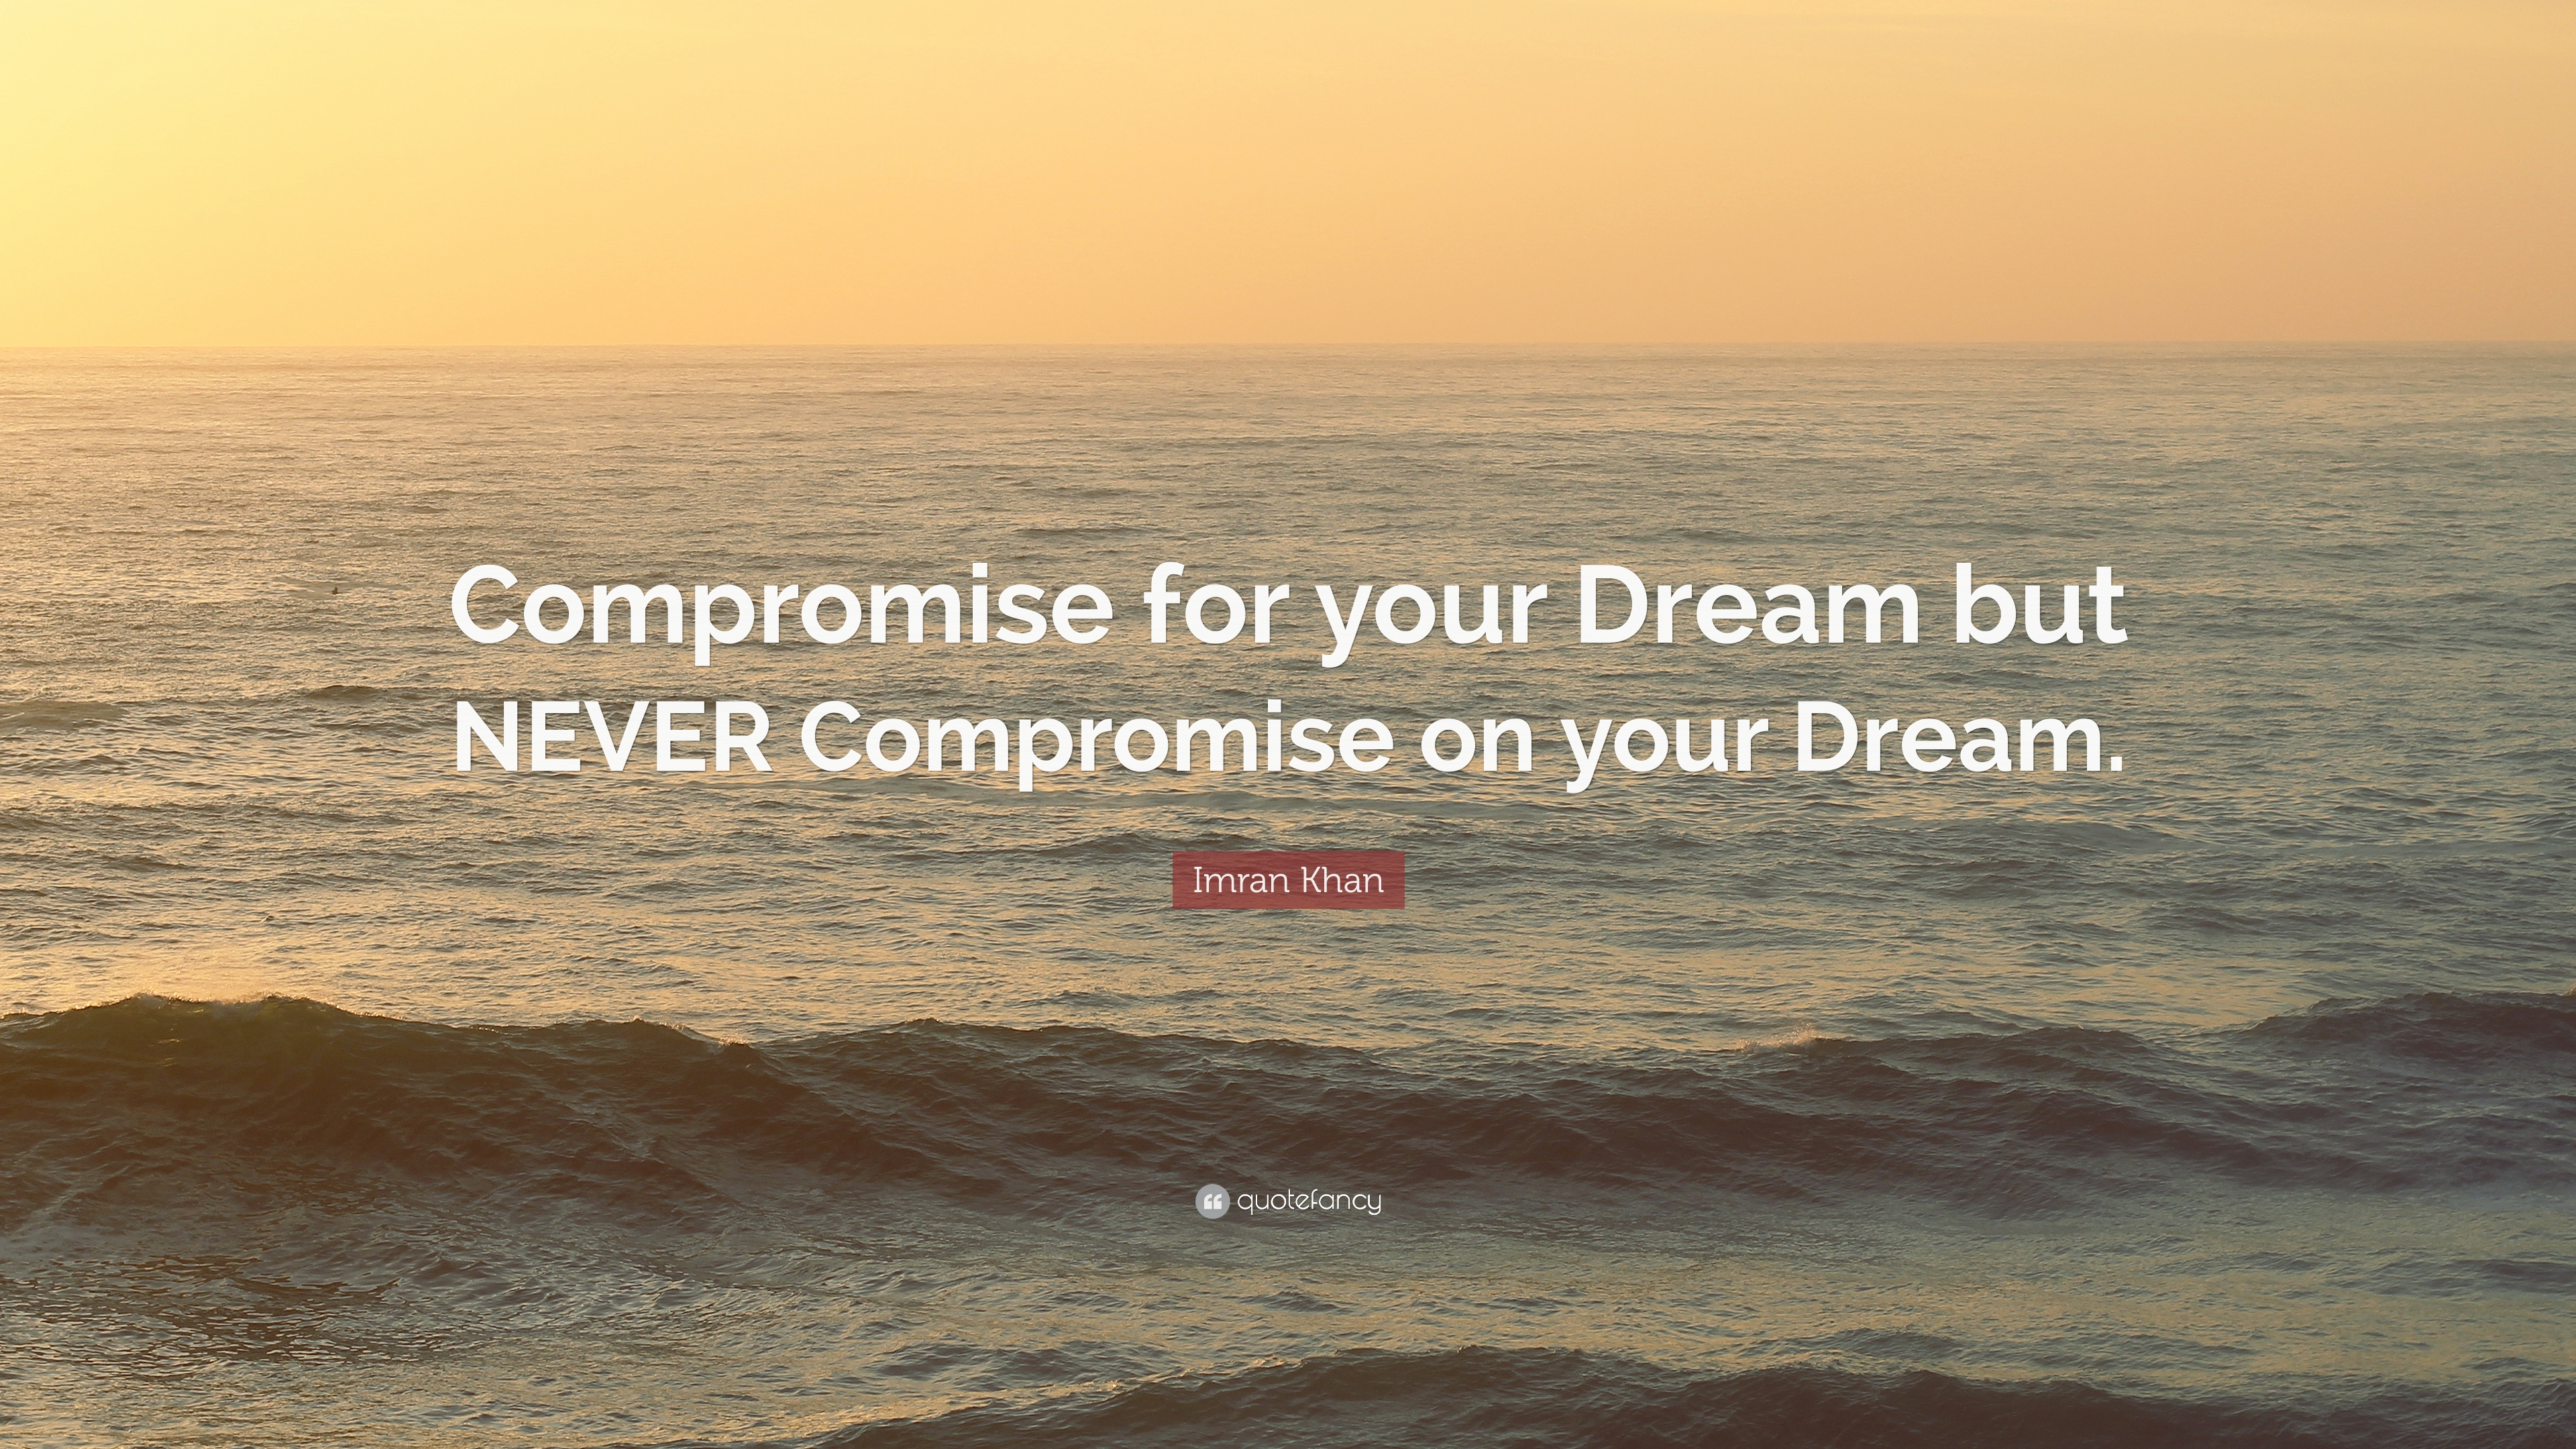 Imran Khan Quote: Compromise for your Dream but NEVER